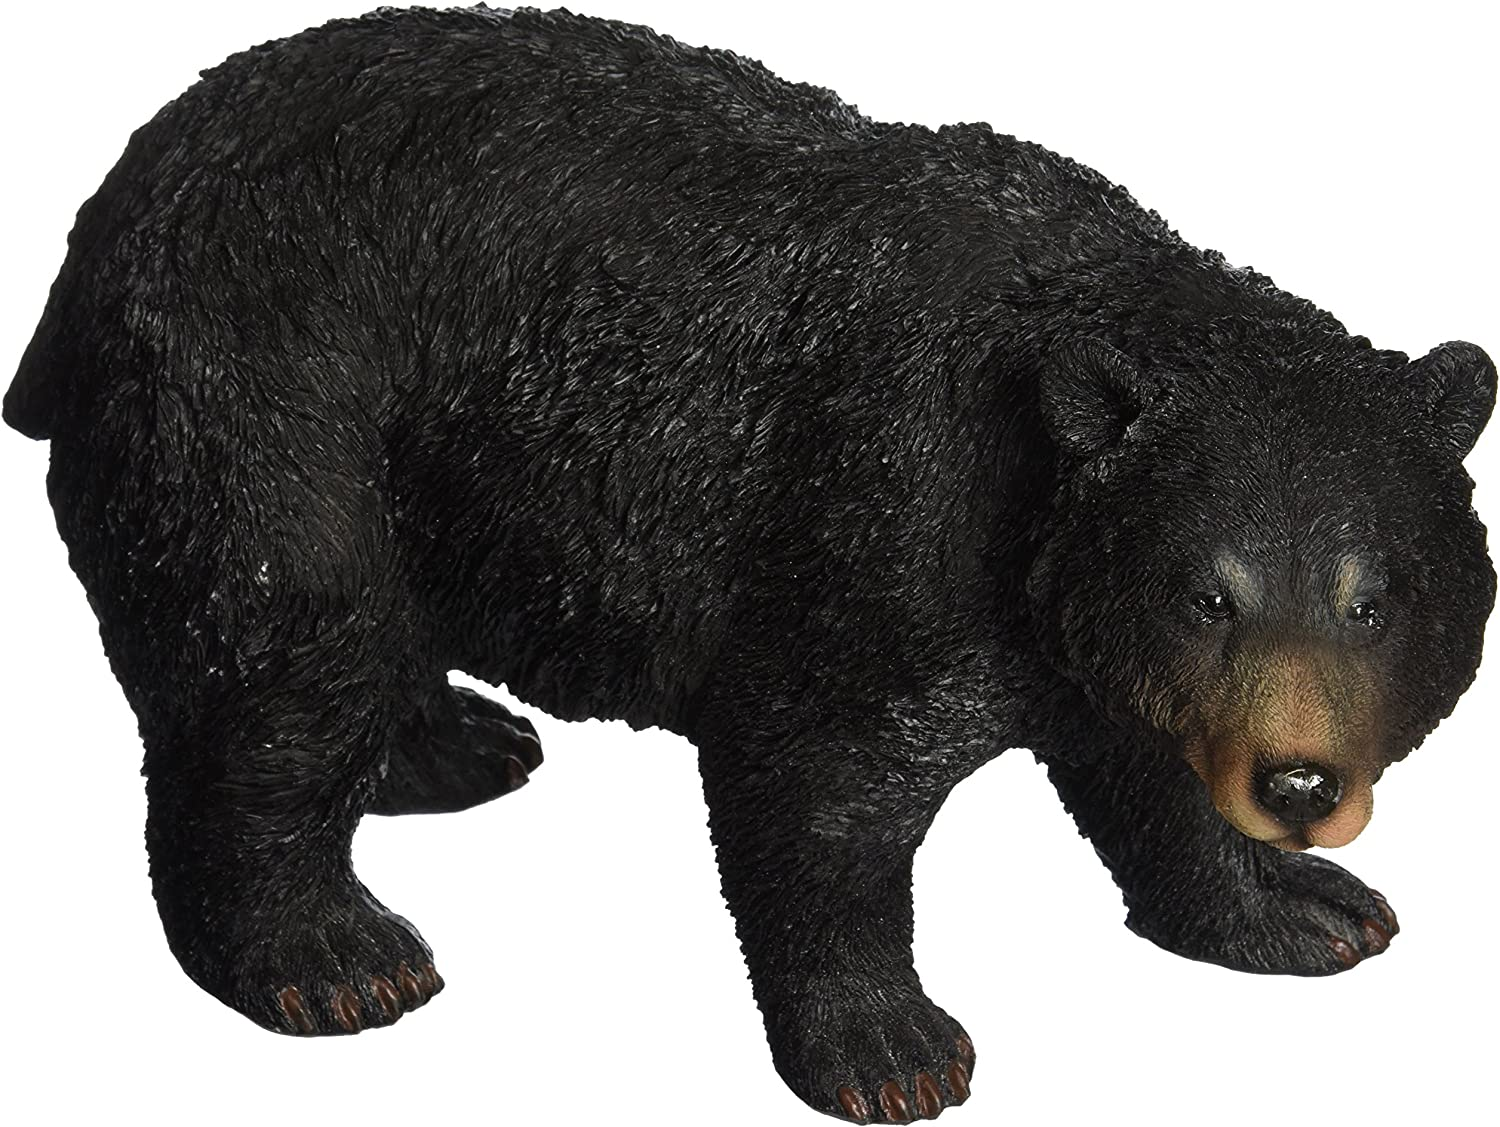 Design Toscano QM24217001 Black Bear Statue Walking, Multicolored